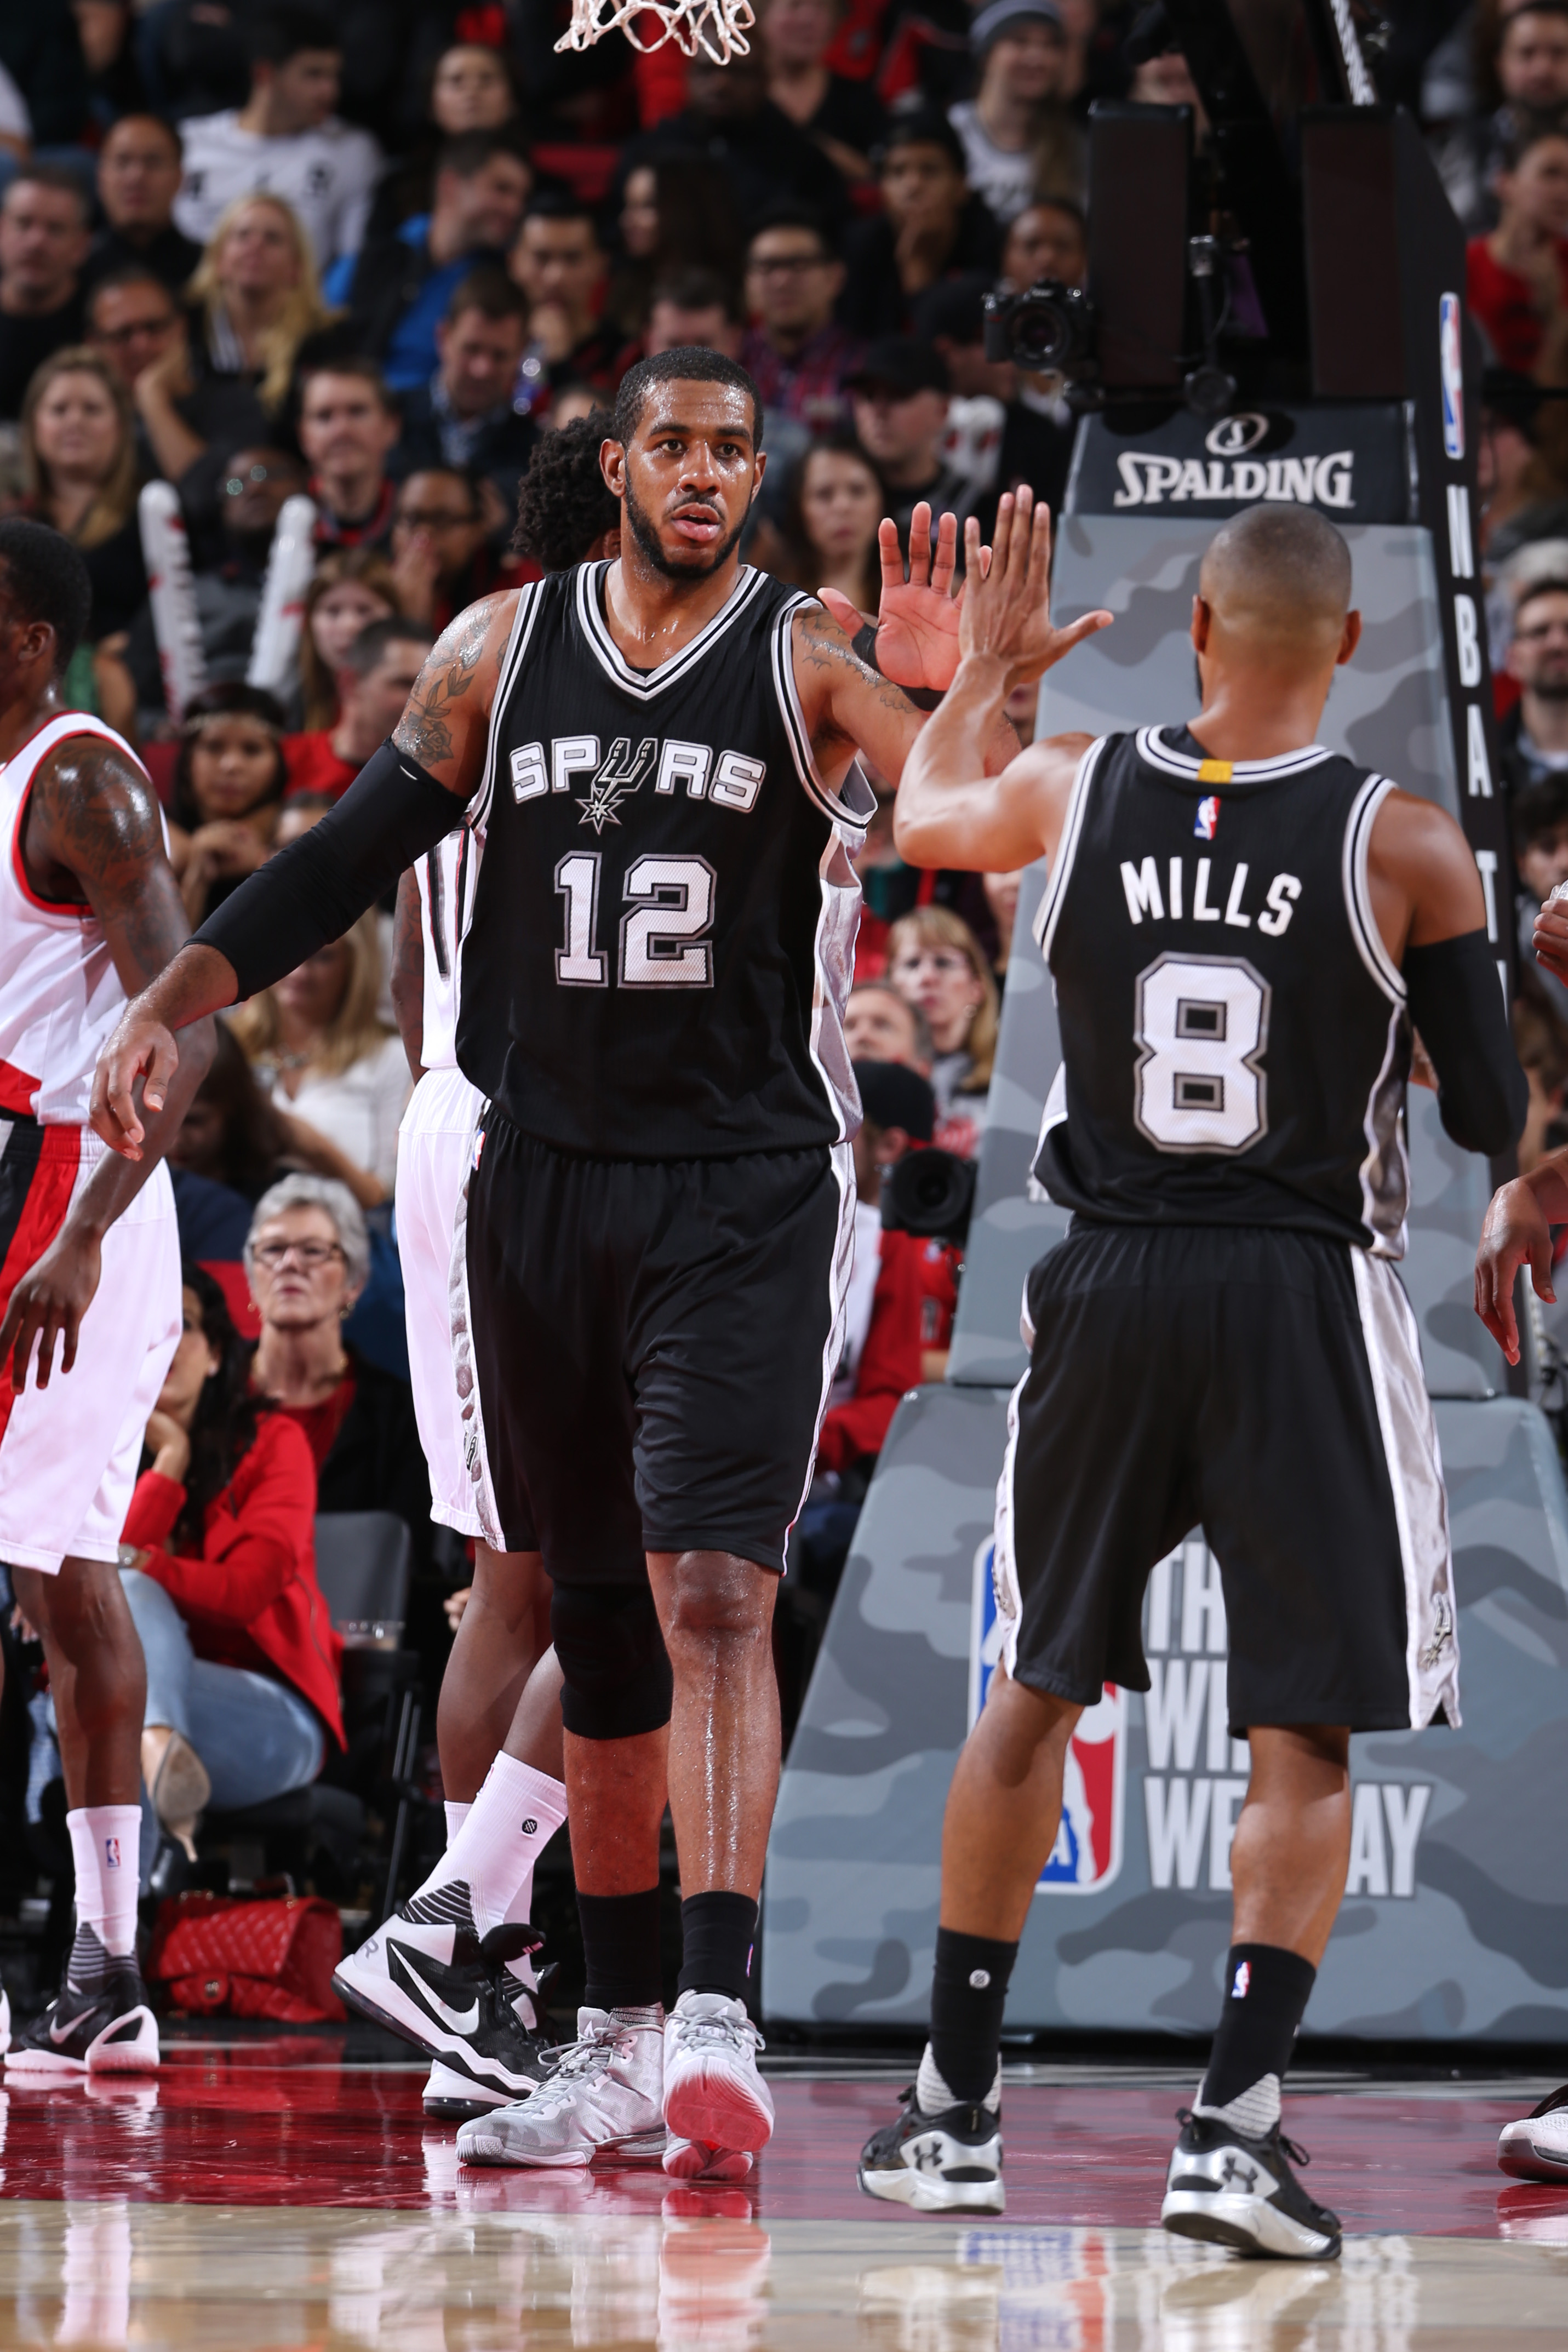 PORTLAND, OR - NOVEMBER 11: LaMarcus Aldridge #12 high fives Patty Mills #8 of the San Antonio Spurs during the game against the Portland Trail Blazers on November 11, 2015 at Moda Center in Portland, Oregon. (Photo by Sam Forencich/NBAE via Getty Images)